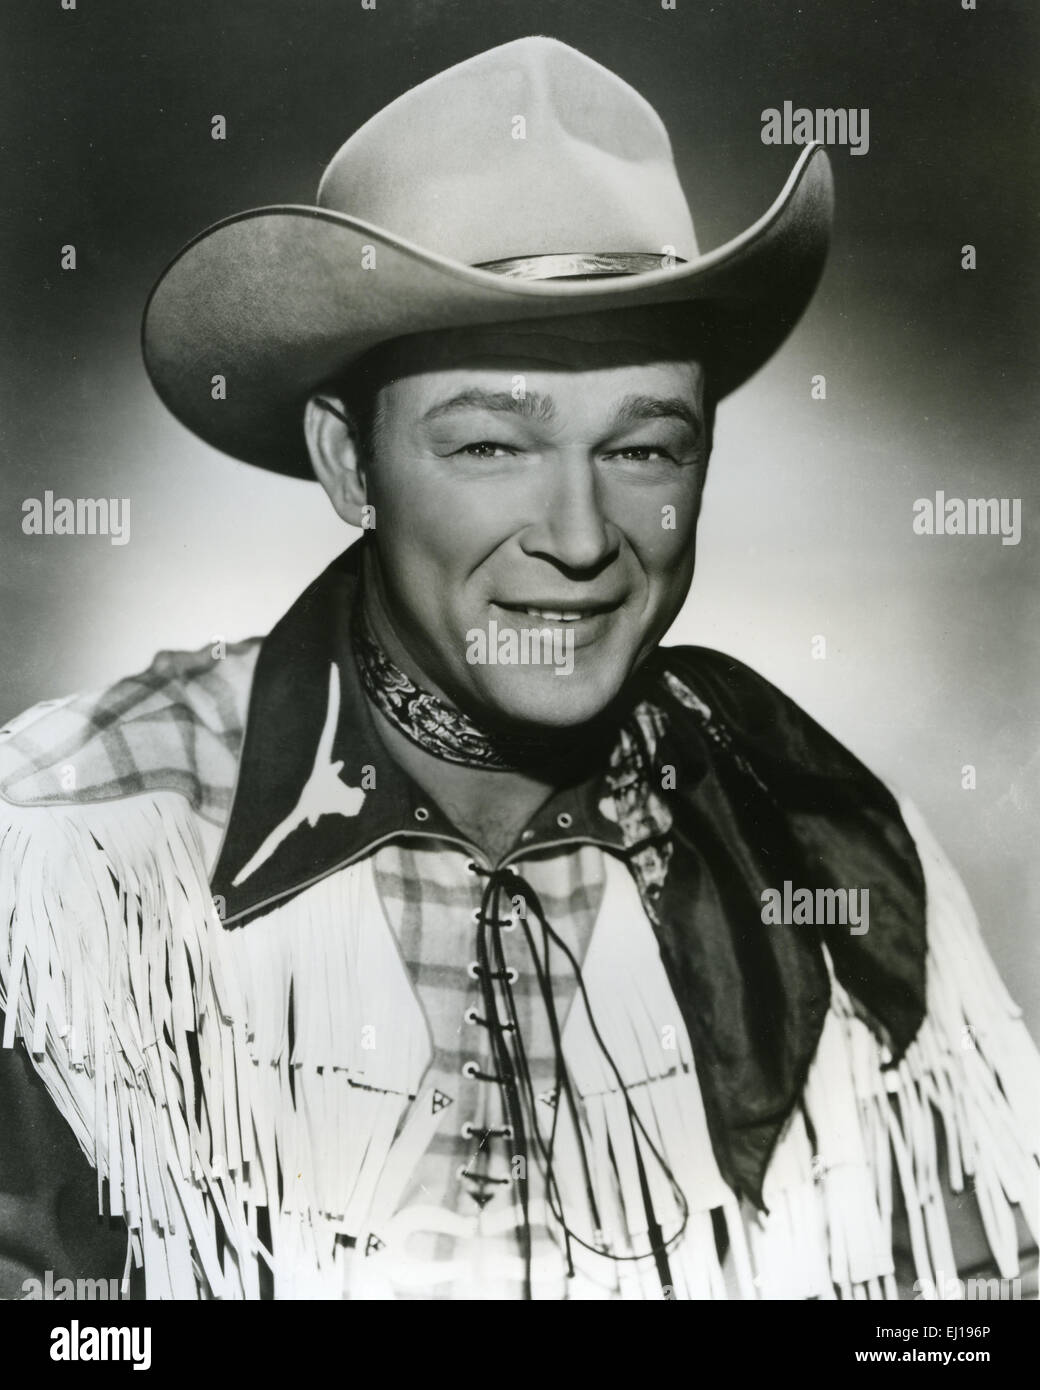 Actor Roy Stock Photos & Actor Roy Stock Images - Alamy